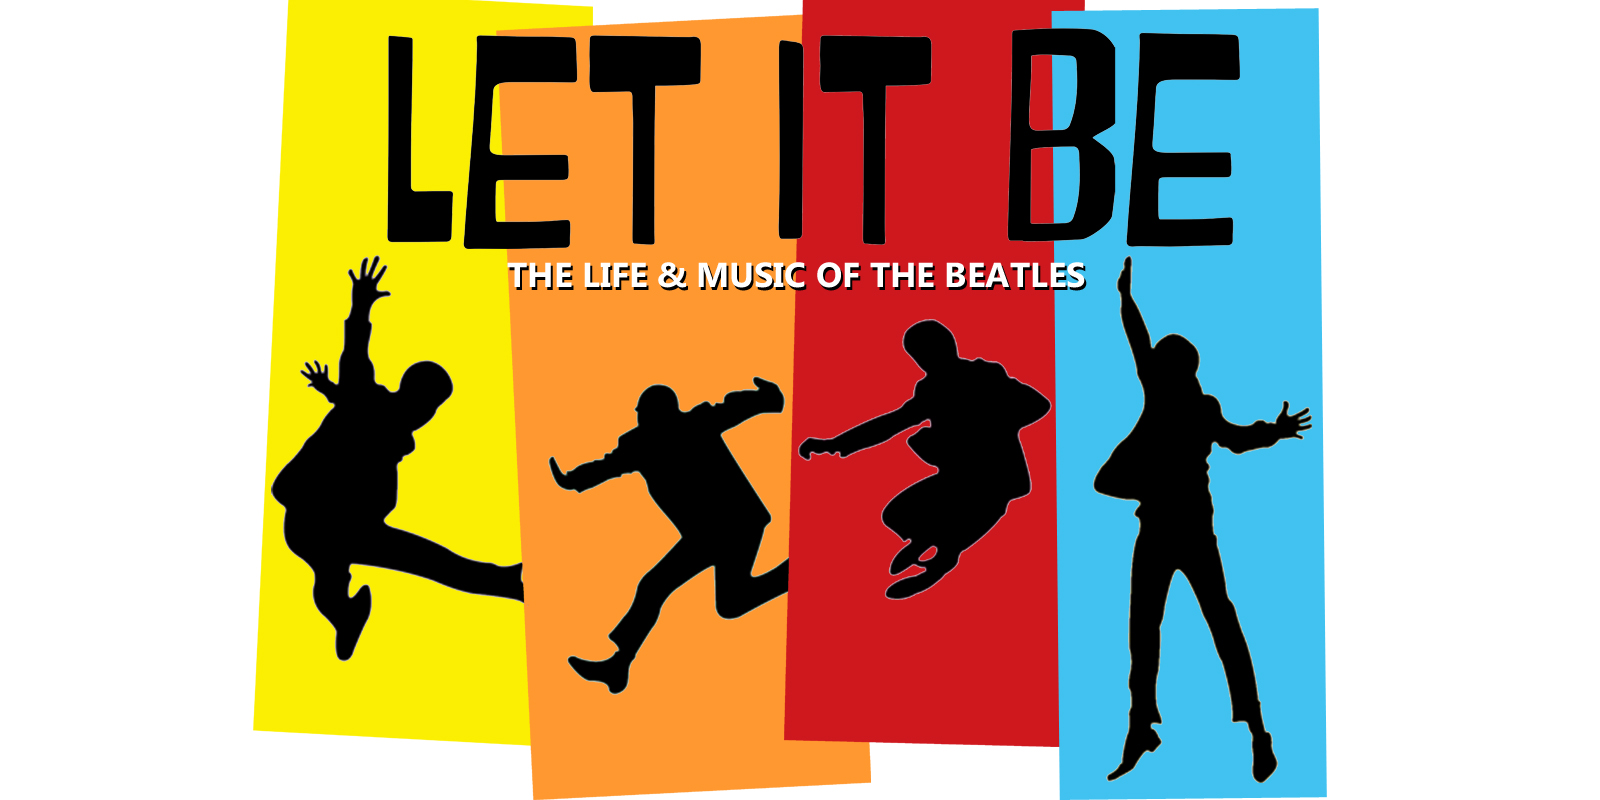 Let It Be - the Life and Music of The Beatles